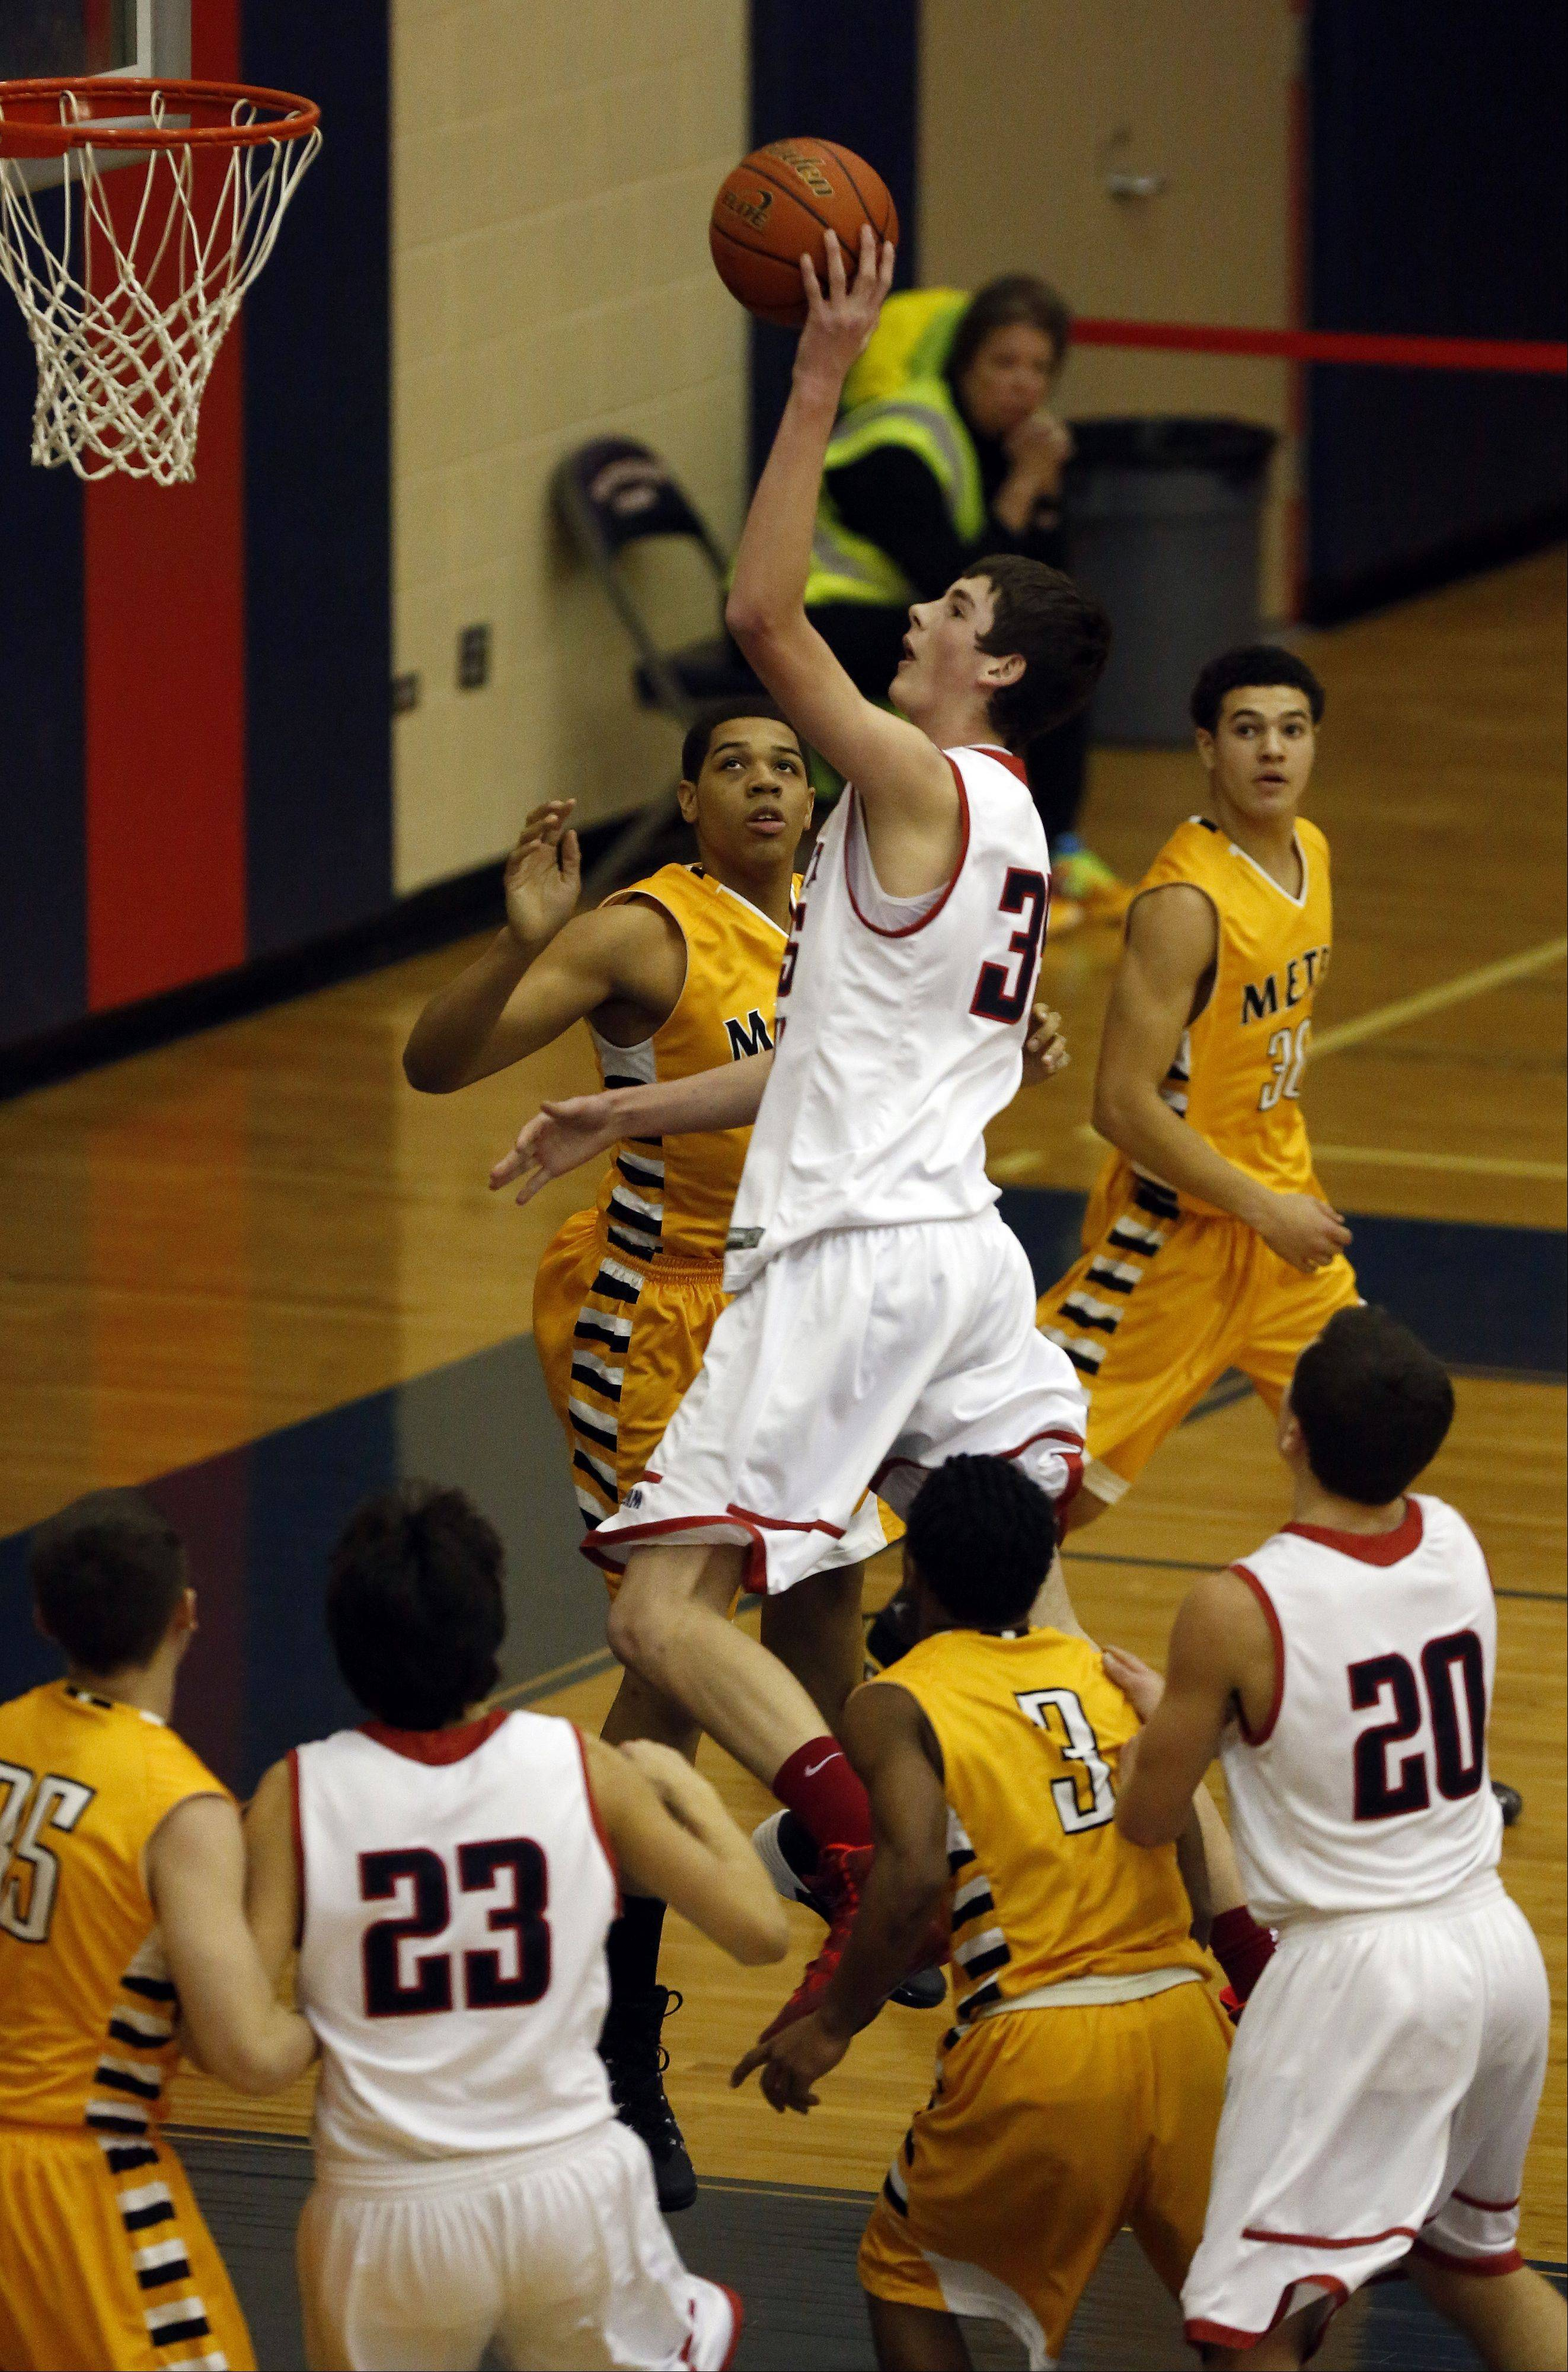 South Elgin's Tyler Hankins goes strong to the hoop against Metea Valley.